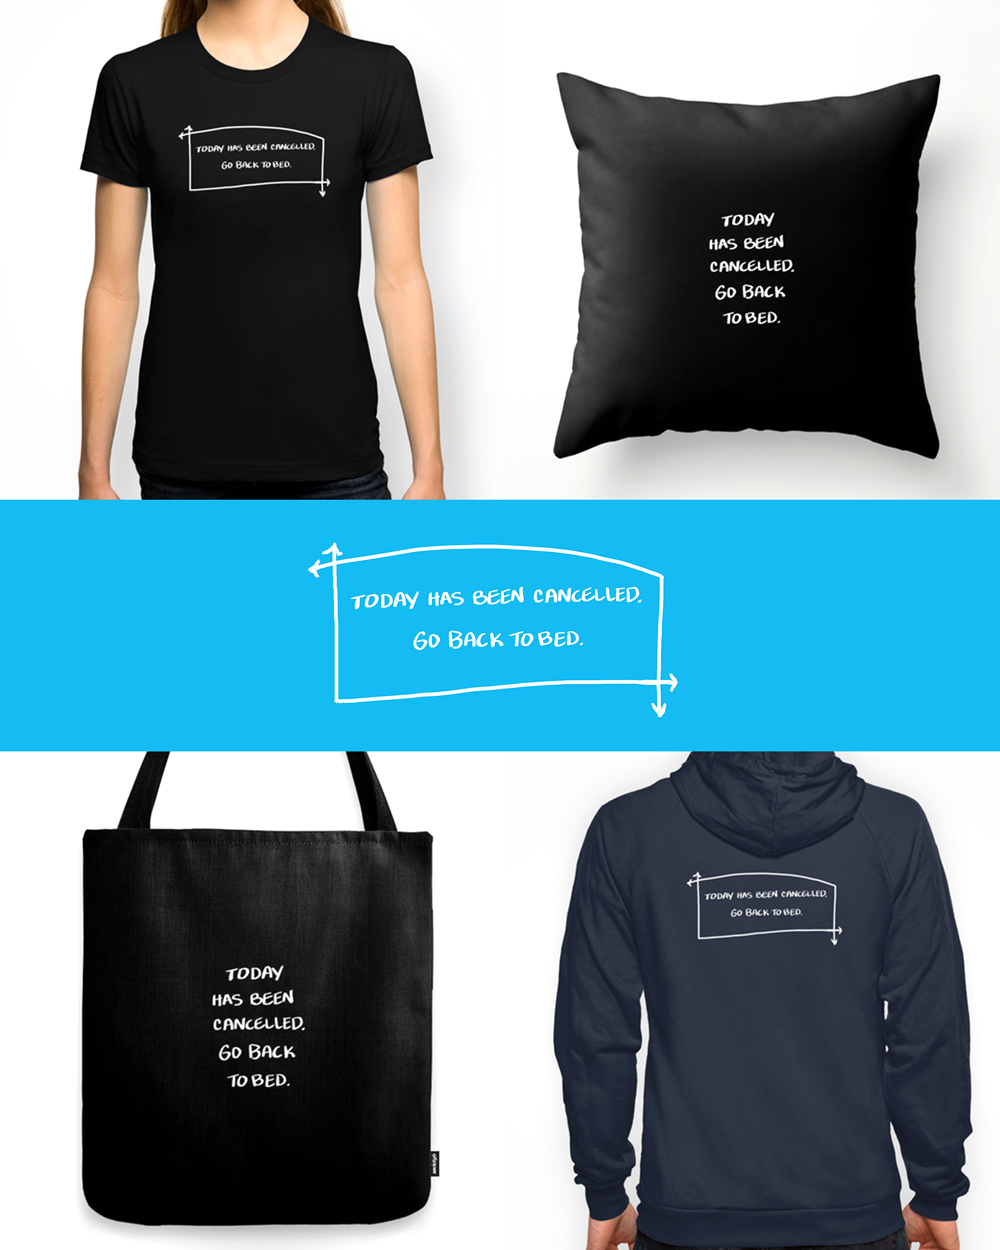 Go Back to Bed -- T-shirts, hoodies, totes, and pillows at my online shop.